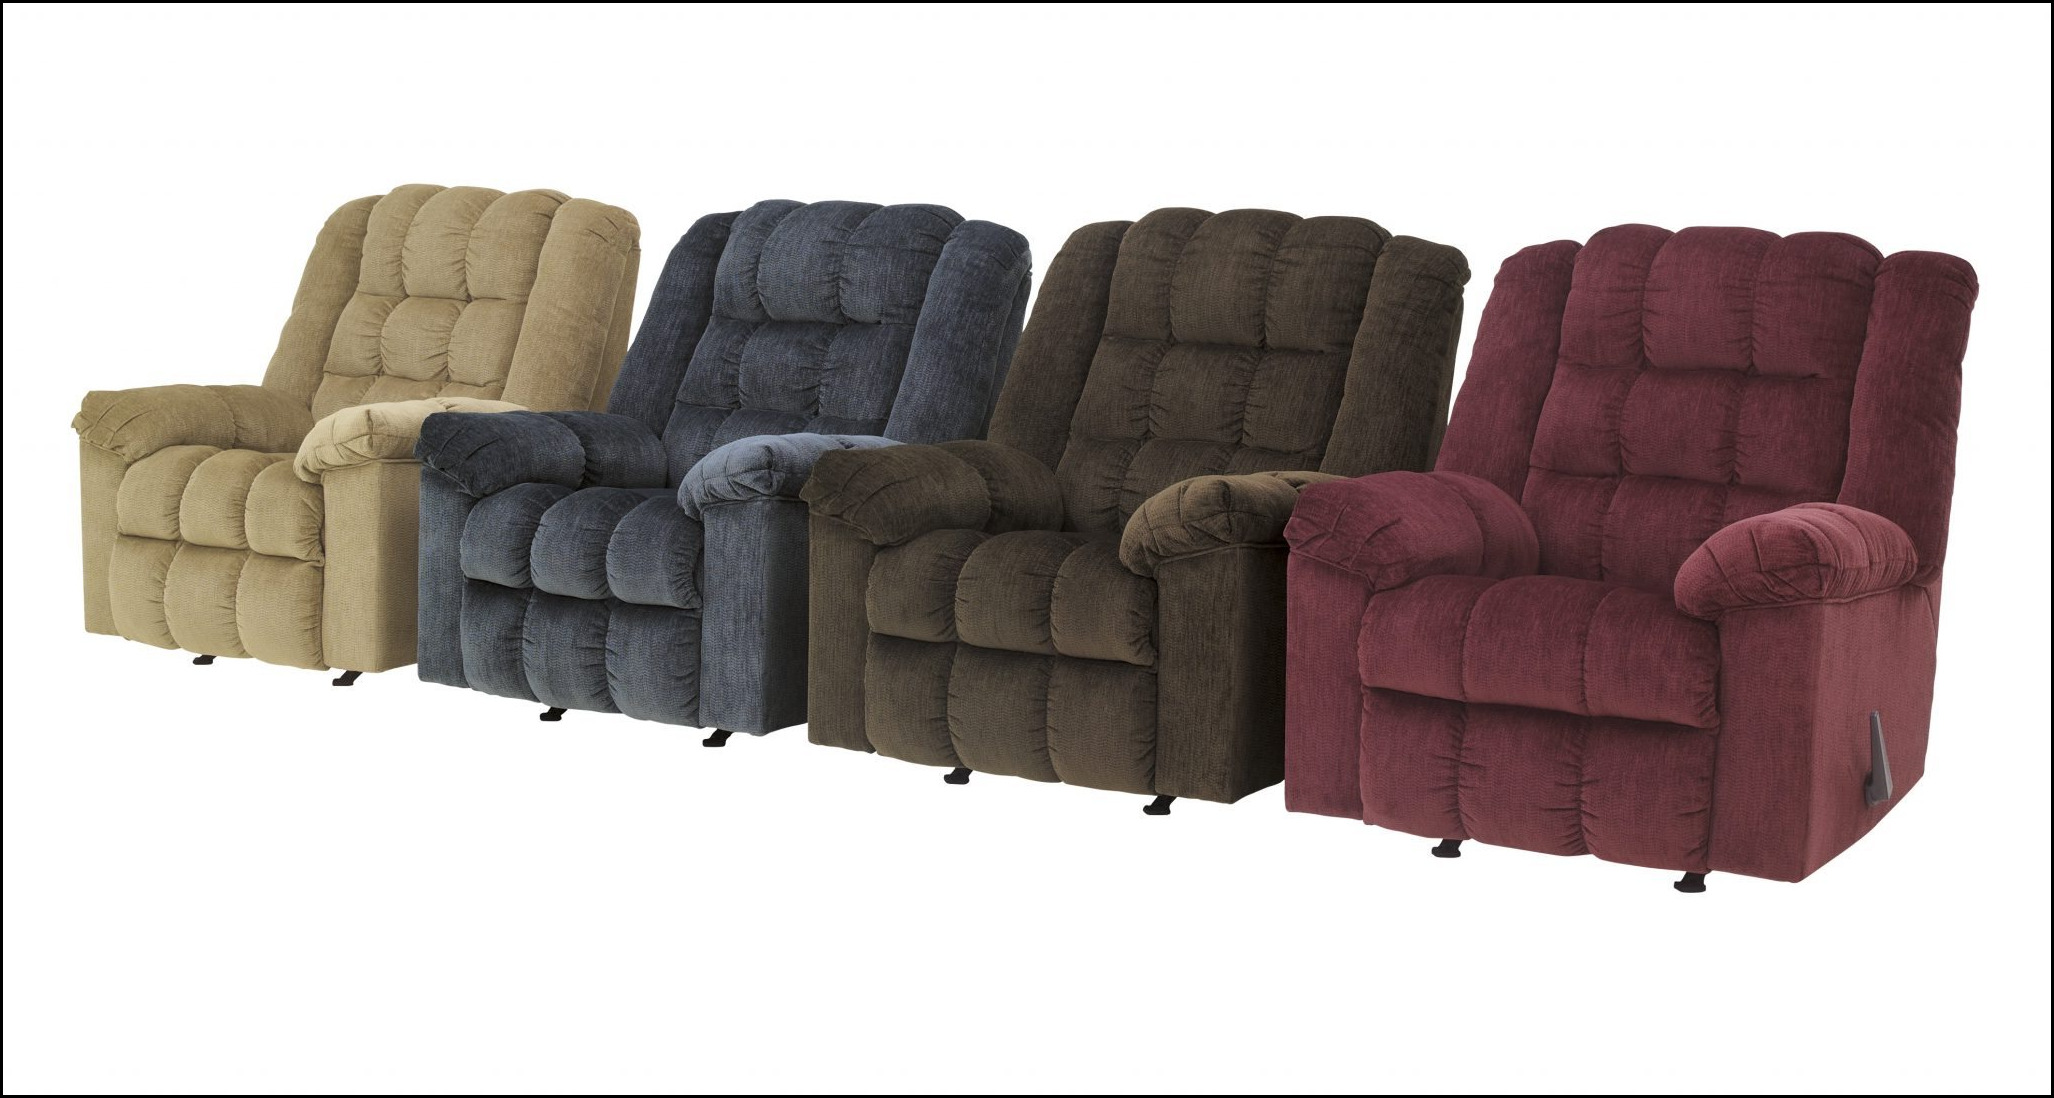 10yr Ulp Chair Sixty Nine 00 Couch 99 Delivery Cost 39 Gasoline Surcharge 5 Whole 1 762 Our New Furniture Was Scheduled To